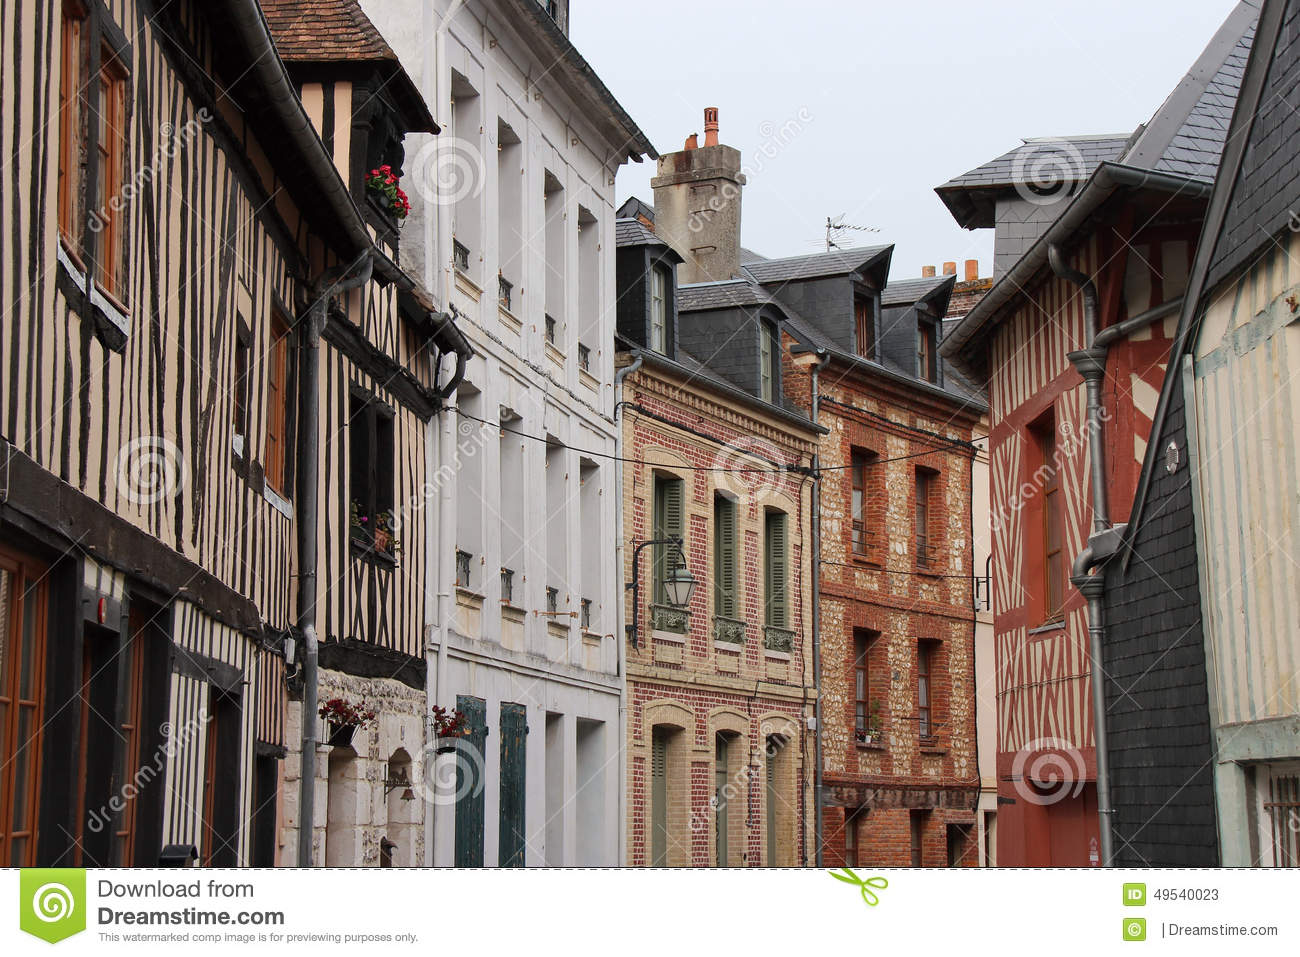 Adjoining Buildings Were Built In Different Styles In Honfleur.